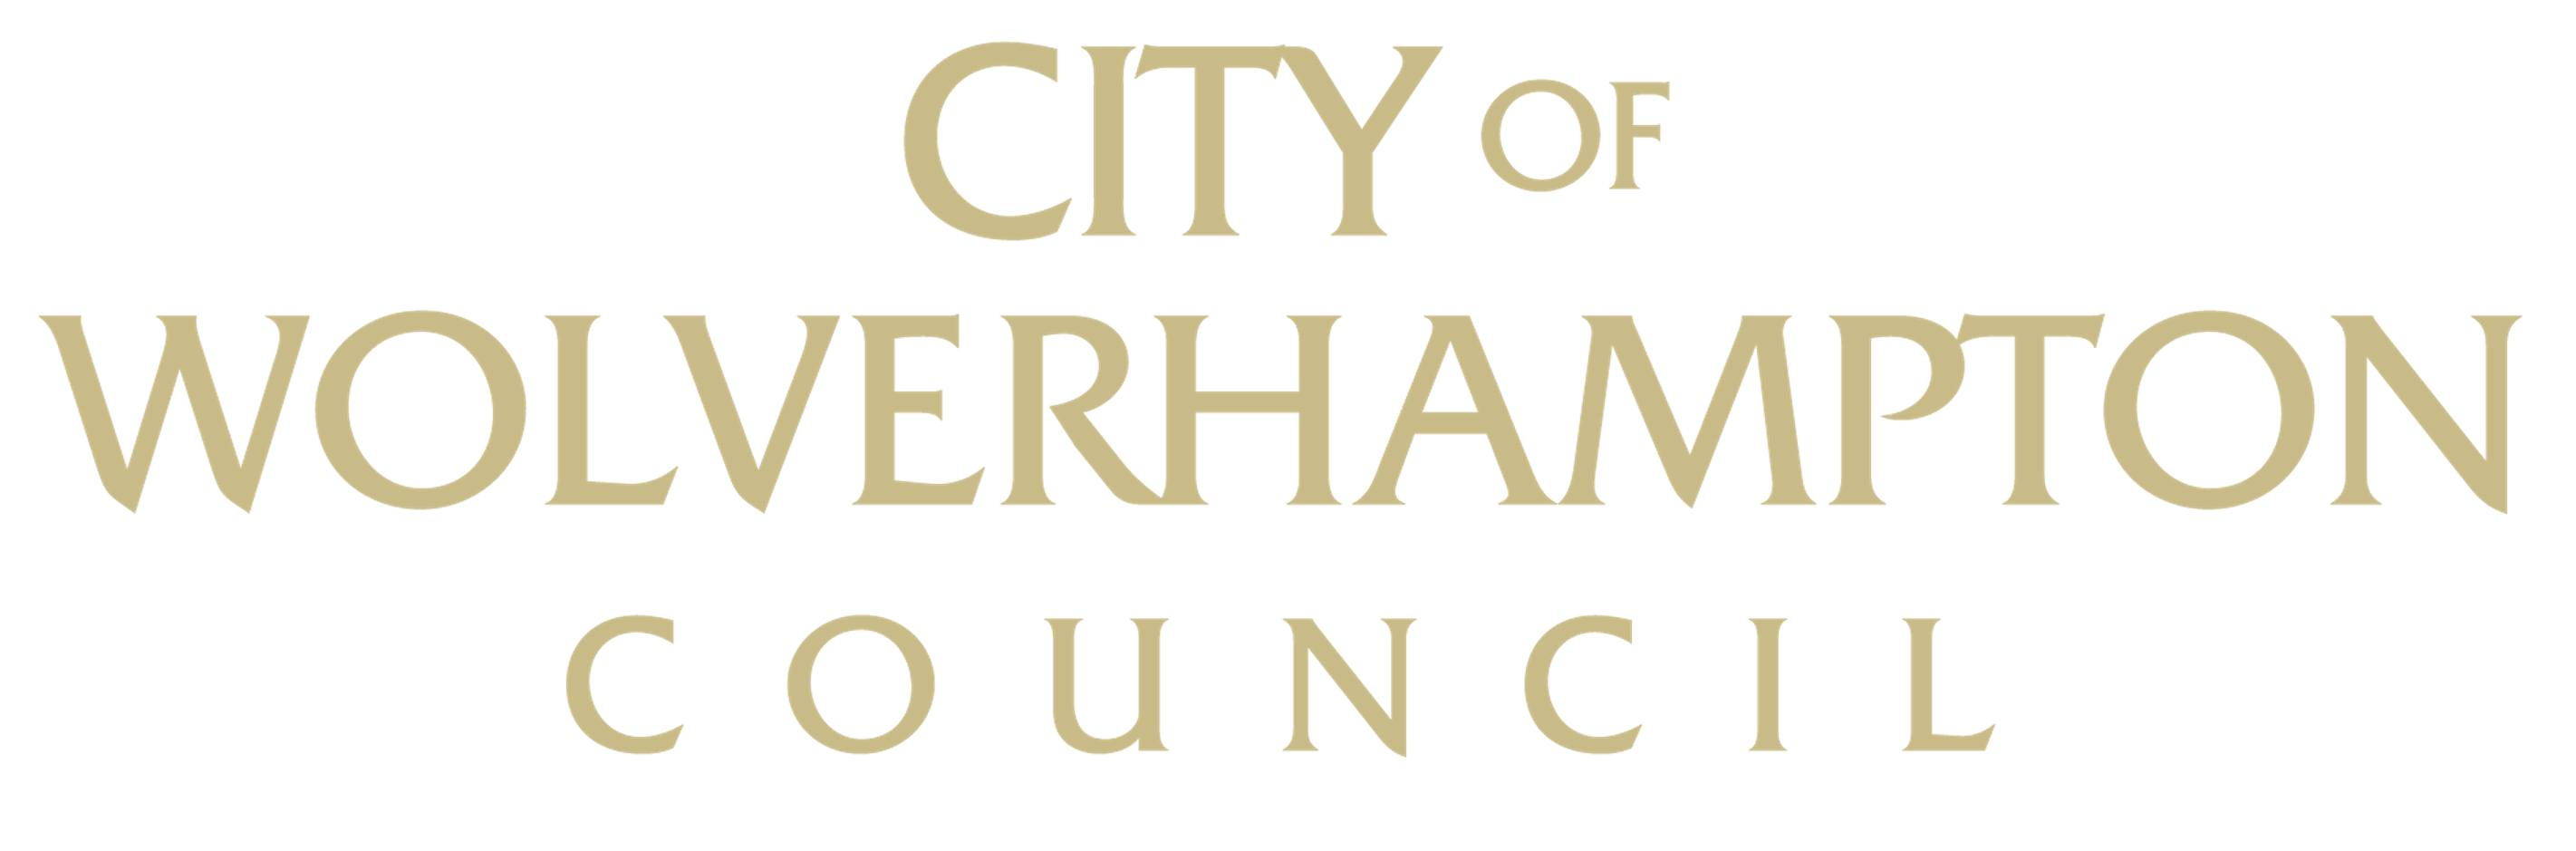 City of Wolverhampton Council logo (gold)